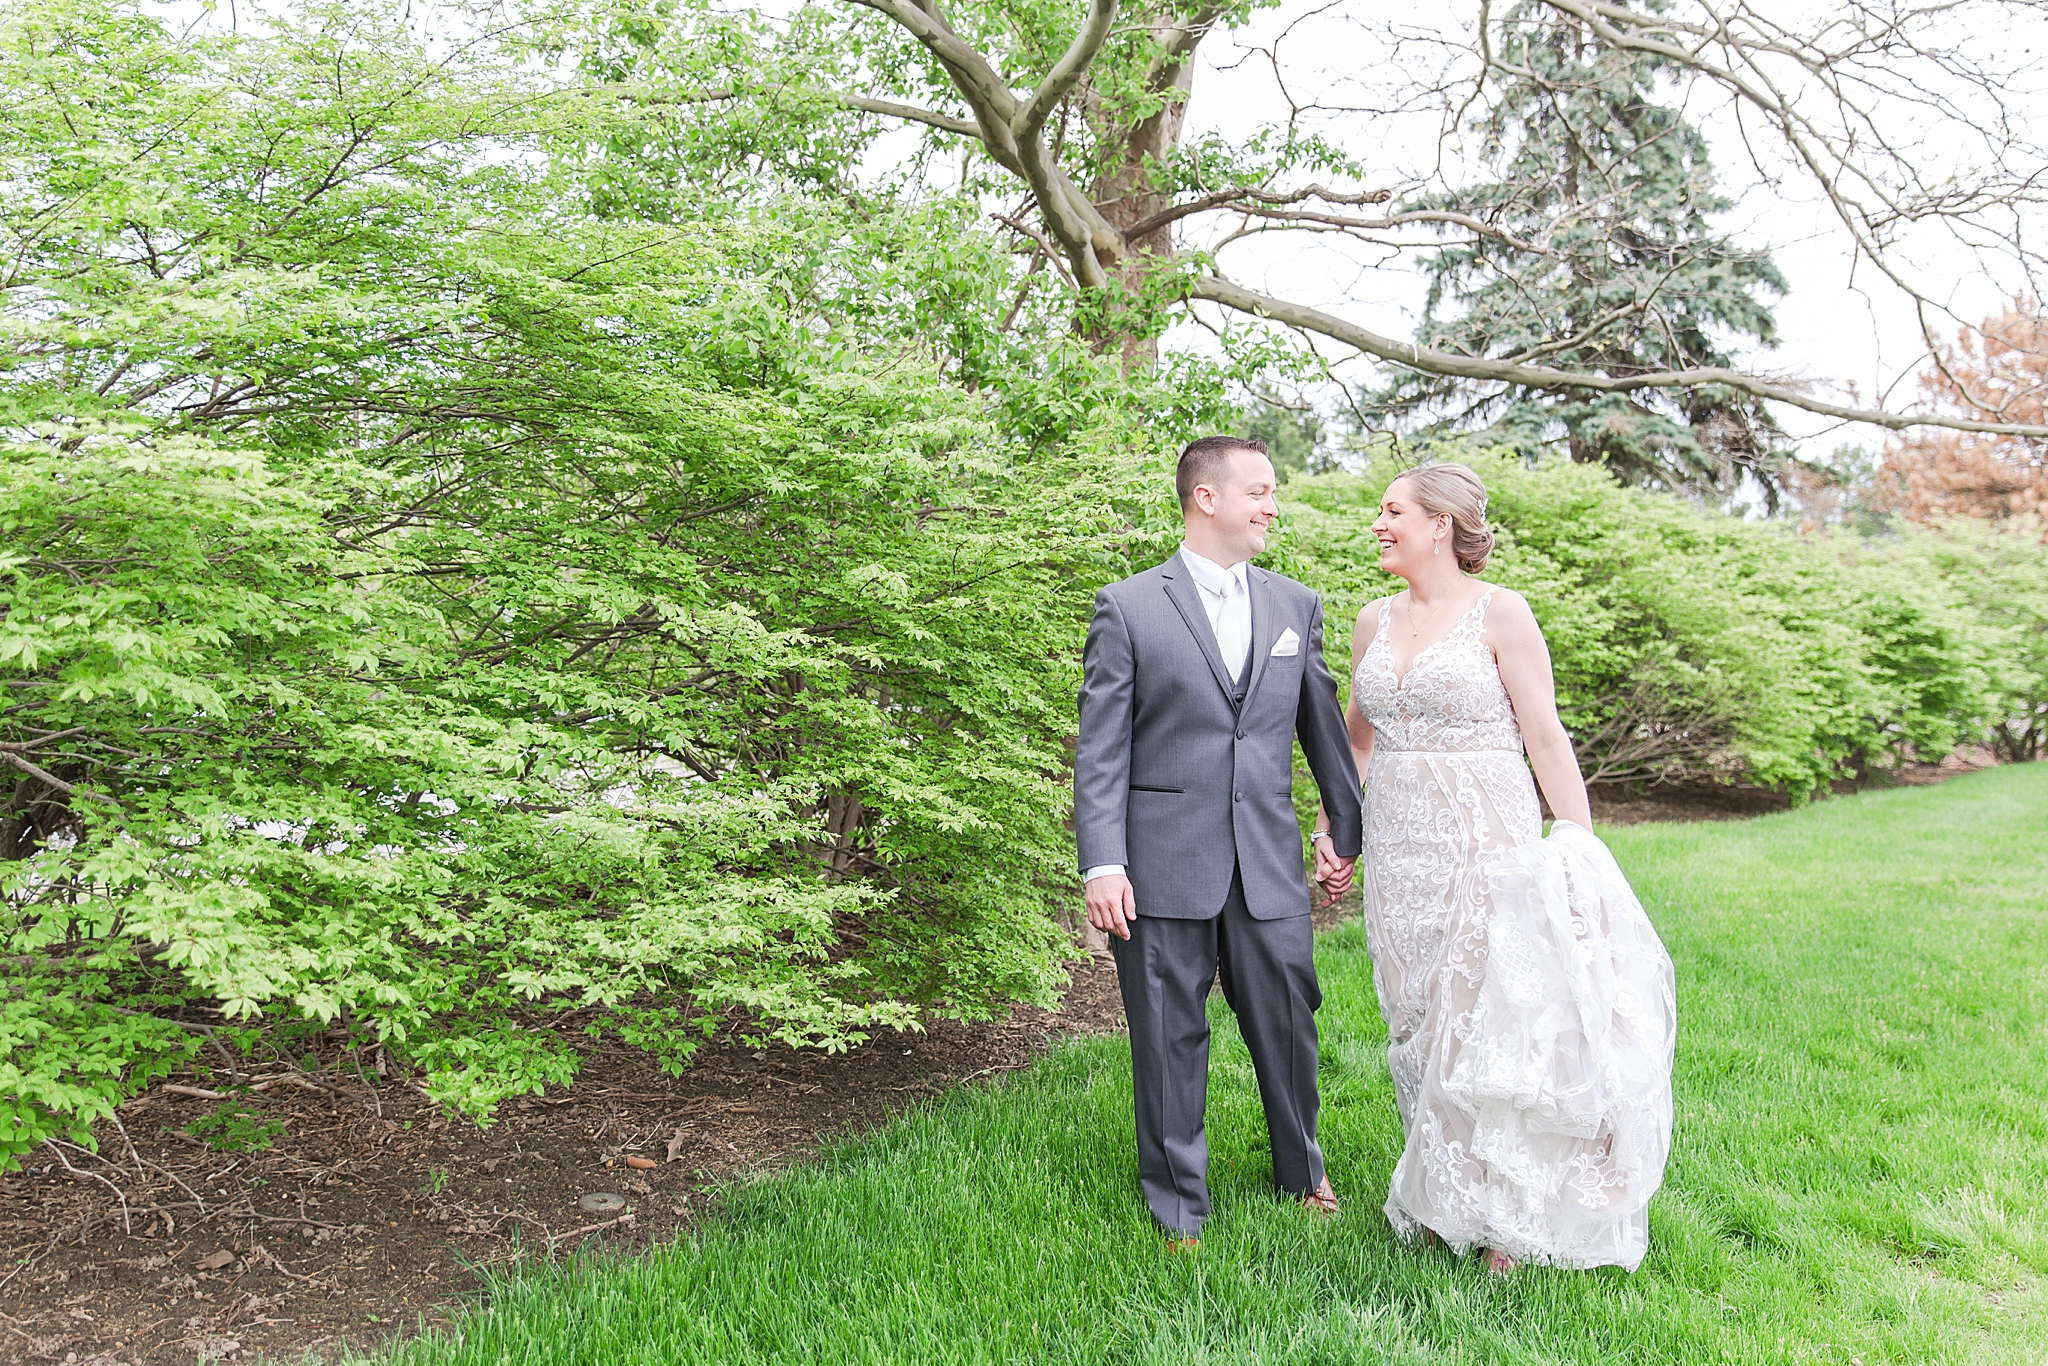 modern-romantic-wedding-photography-at-webers-in-ann-arbor-michigan-by-courtney-carolyn-photography_0042.jpg